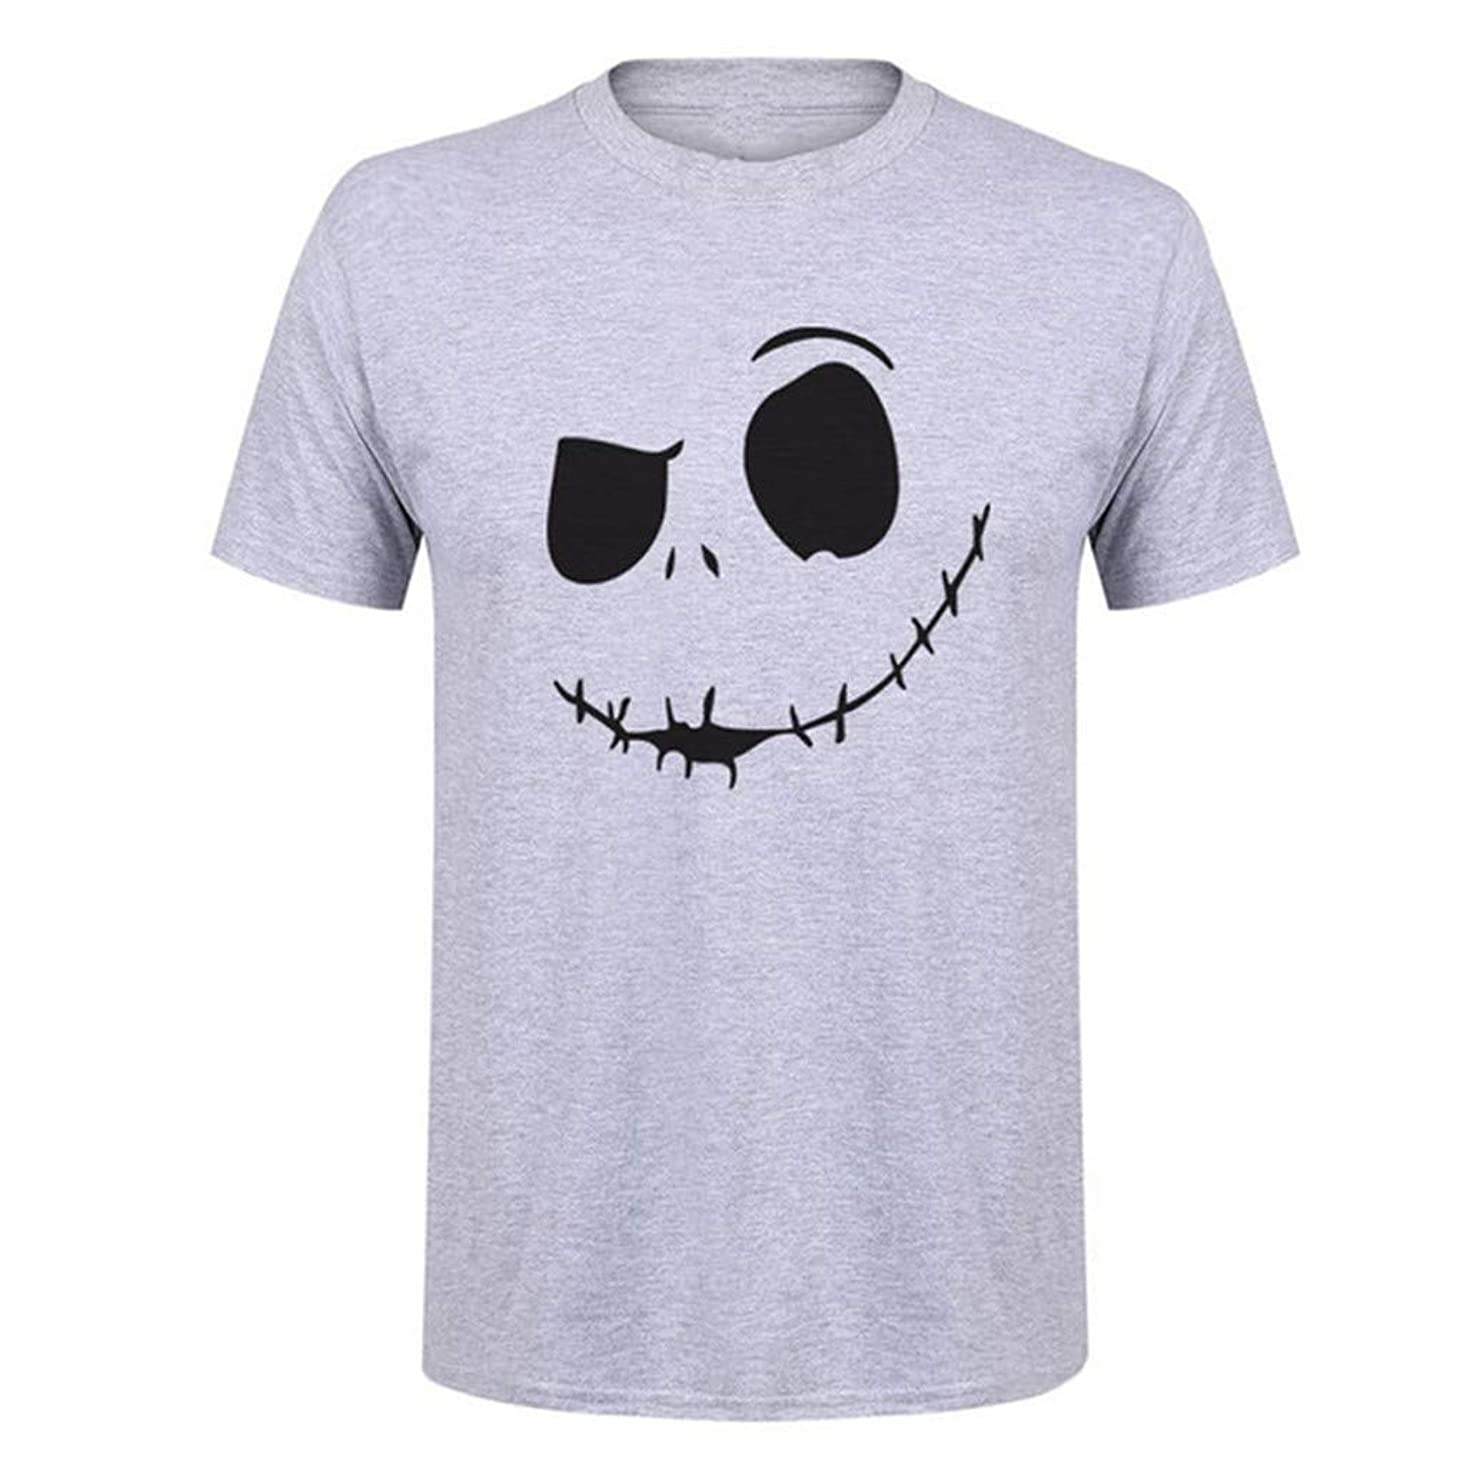 Fxbar T-Shirt,Men's Summer New Evil Smile Face Printed Round-Collar Comfortable T-Shirt Top Simple Blouse